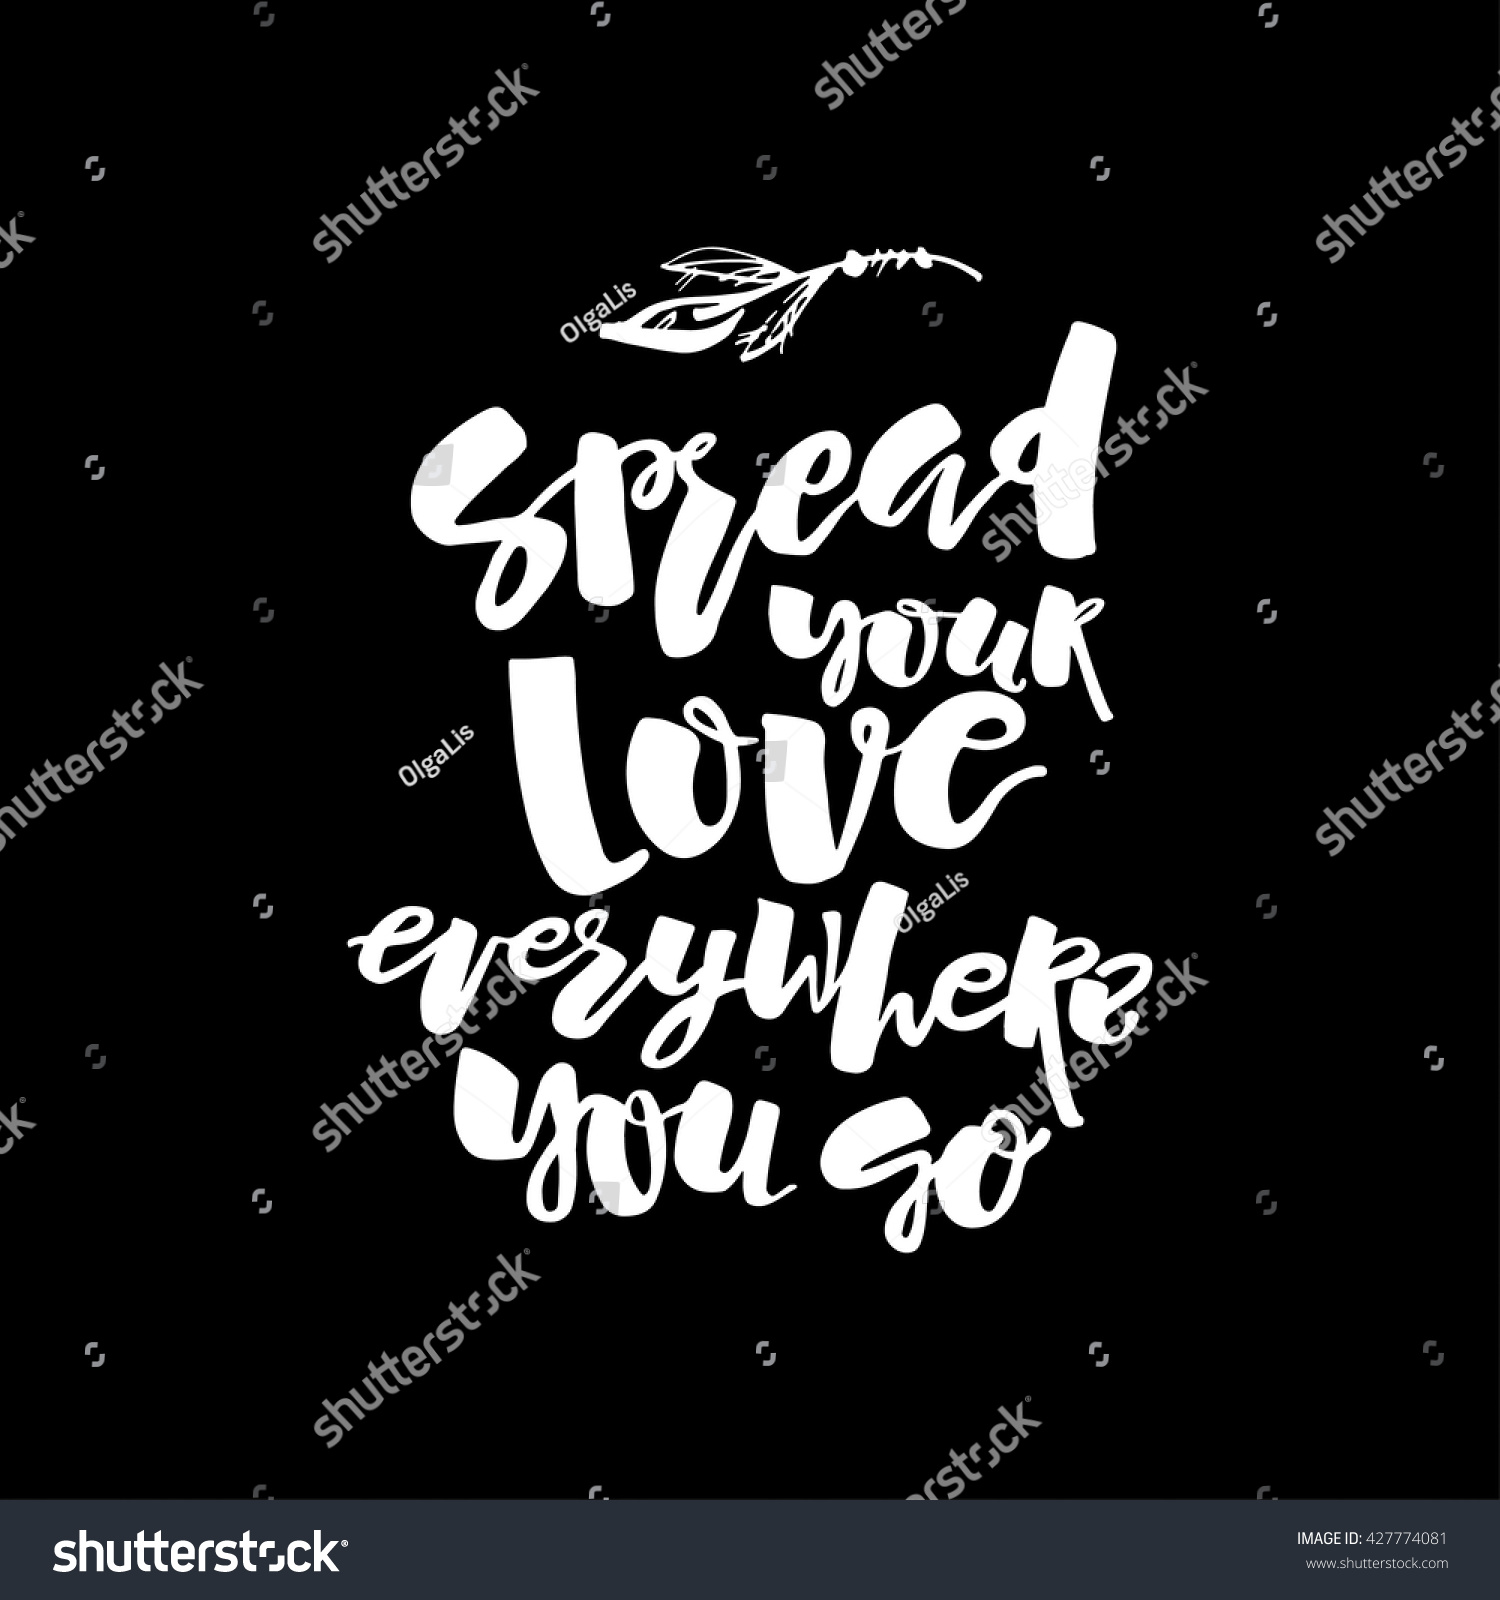 Love charity concept hand lettering motivation stock vector love and charity concept hand lettering motivation poster artistic design for a logo greeting kristyandbryce Image collections